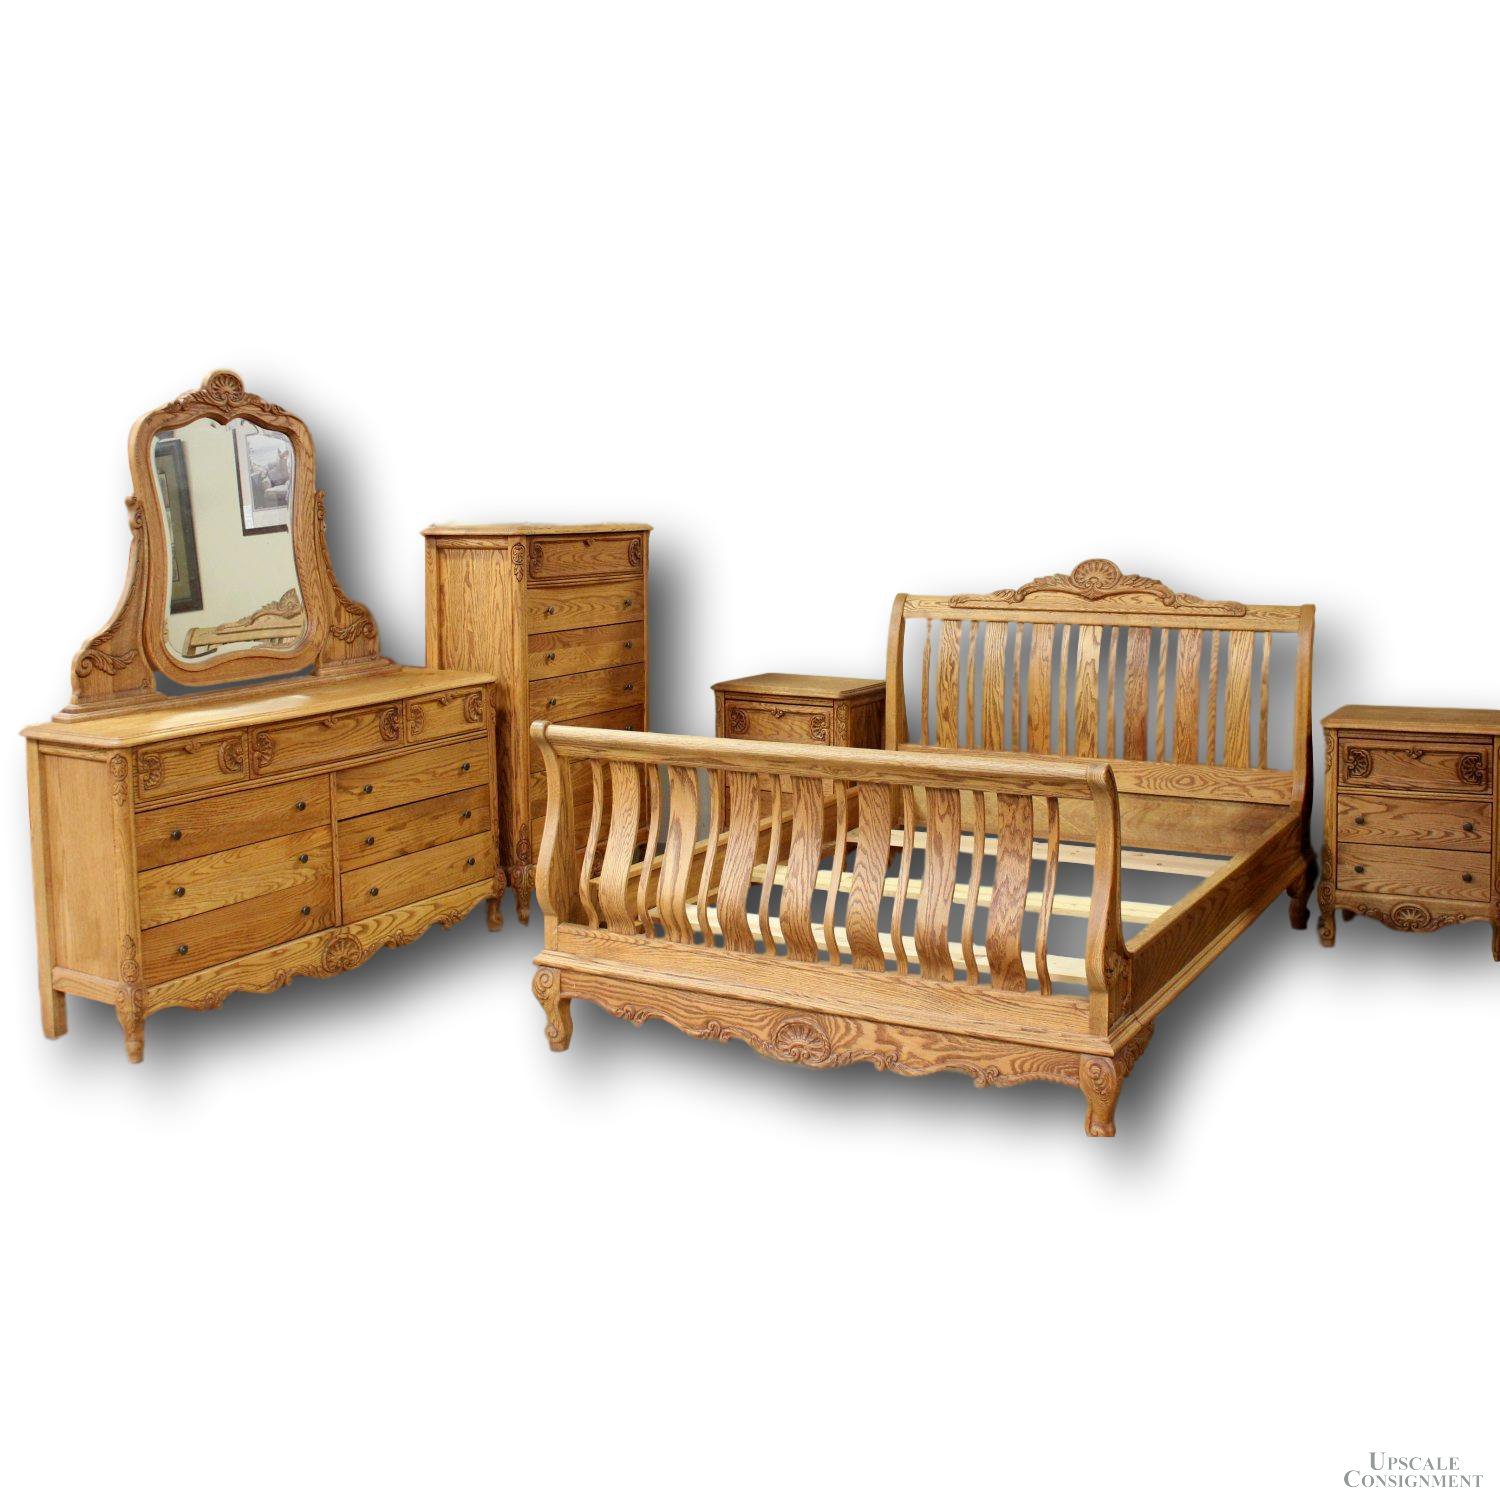 Bebe-Furniture-Oak-5-Pc.-Bedroom-Set_83929A.jpg